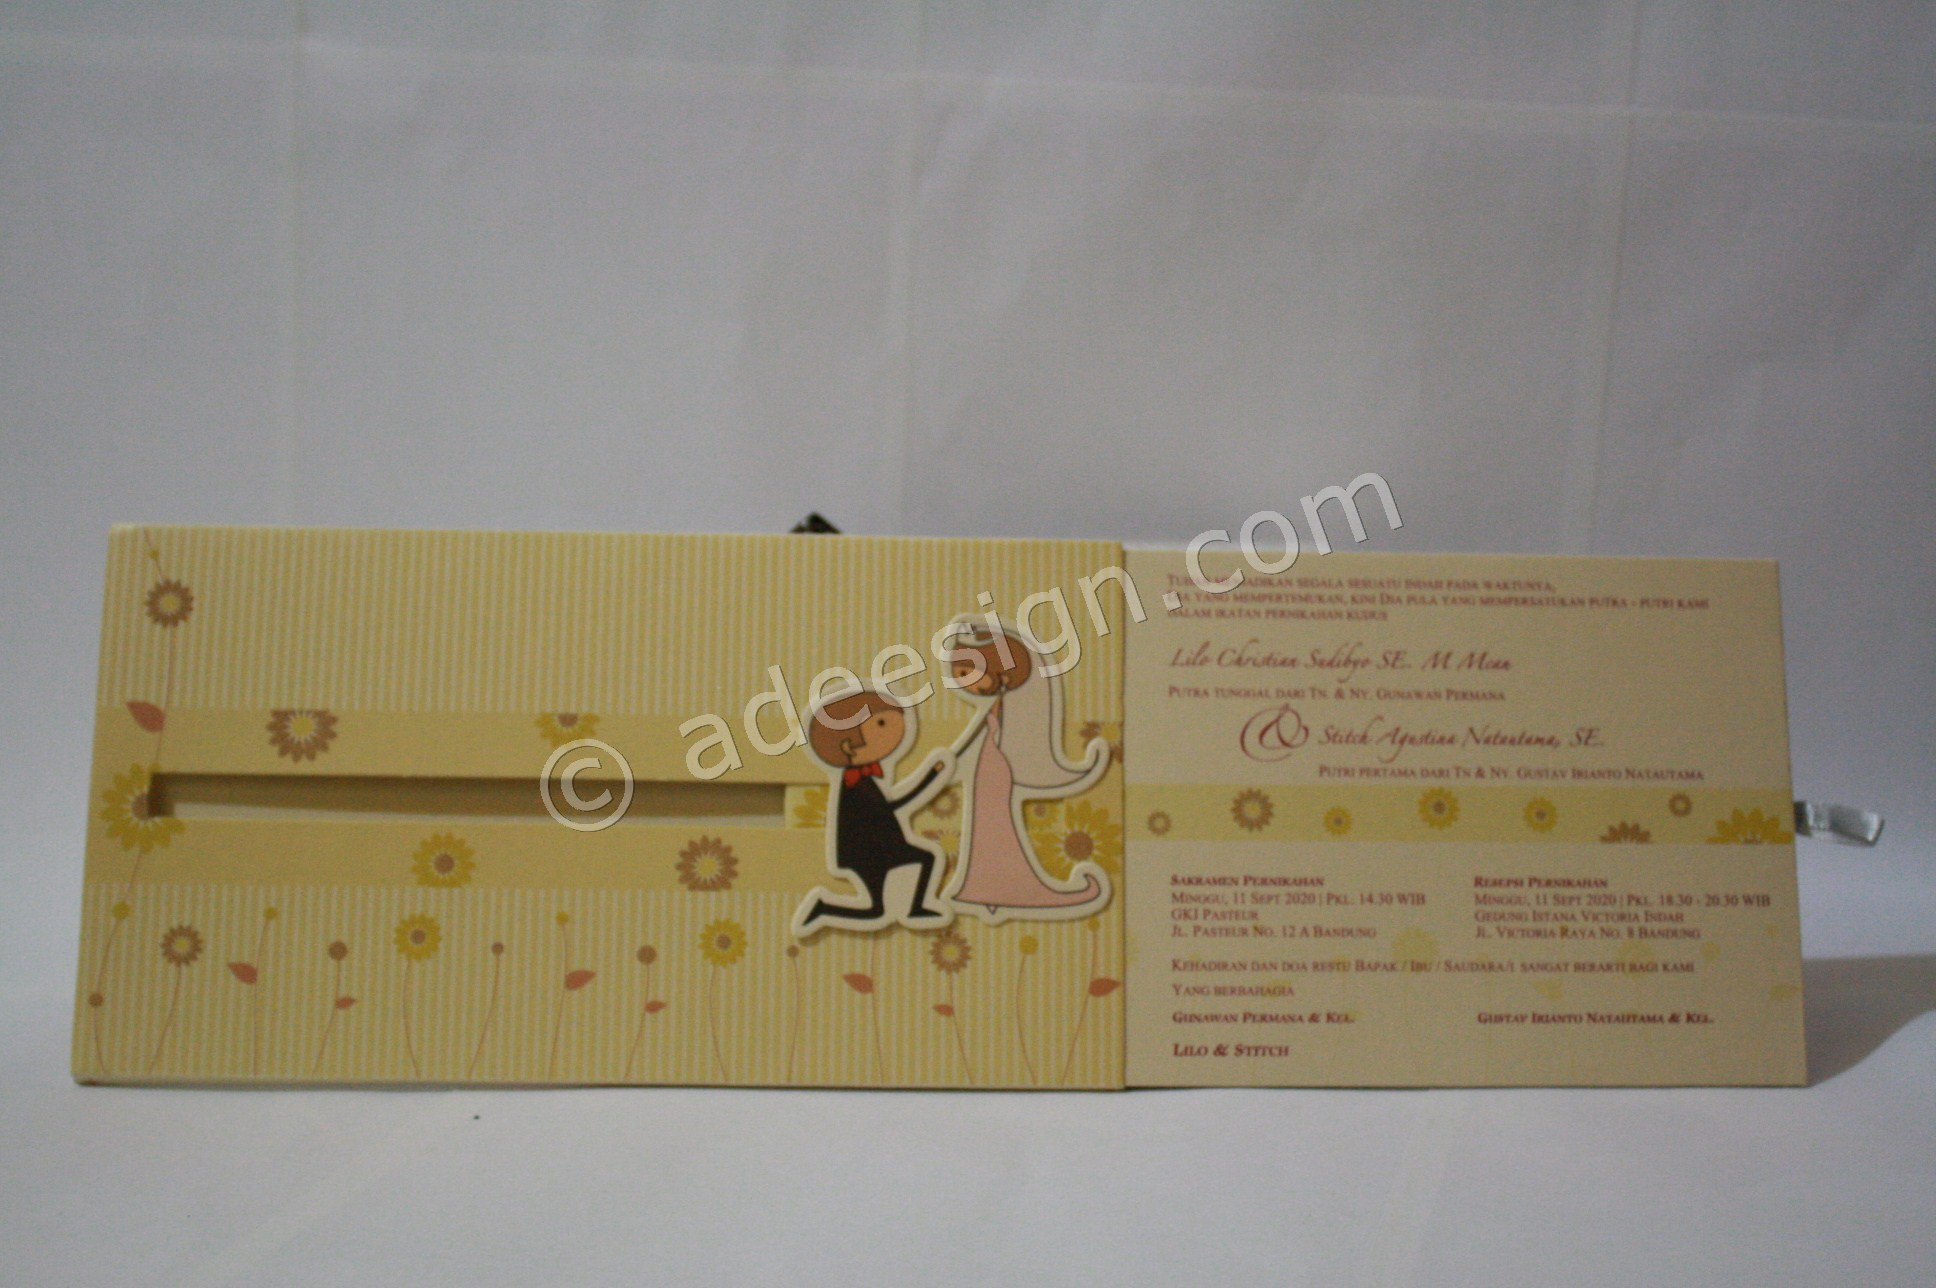 Undangan Pernikahan Hardcover ED69 21 - Percetakan Wedding Invitations Eksklusif di Dukuh Setro